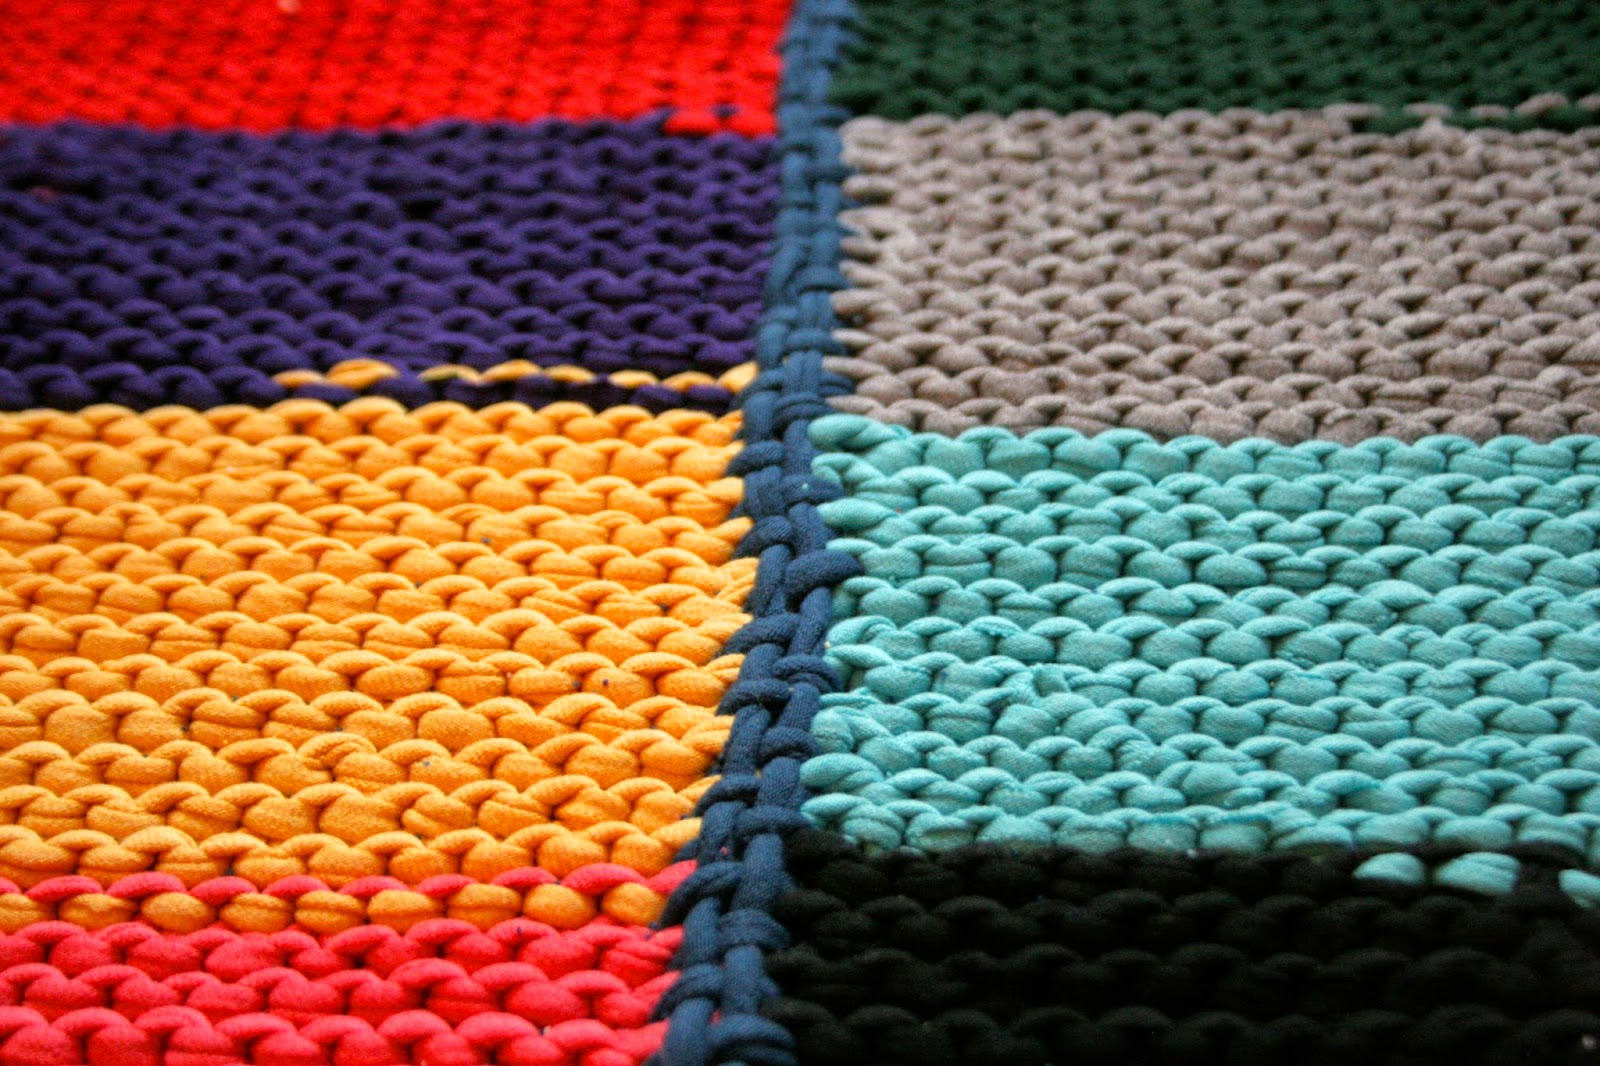 Knitted T-Shirt Rug - The Surznick Common Room